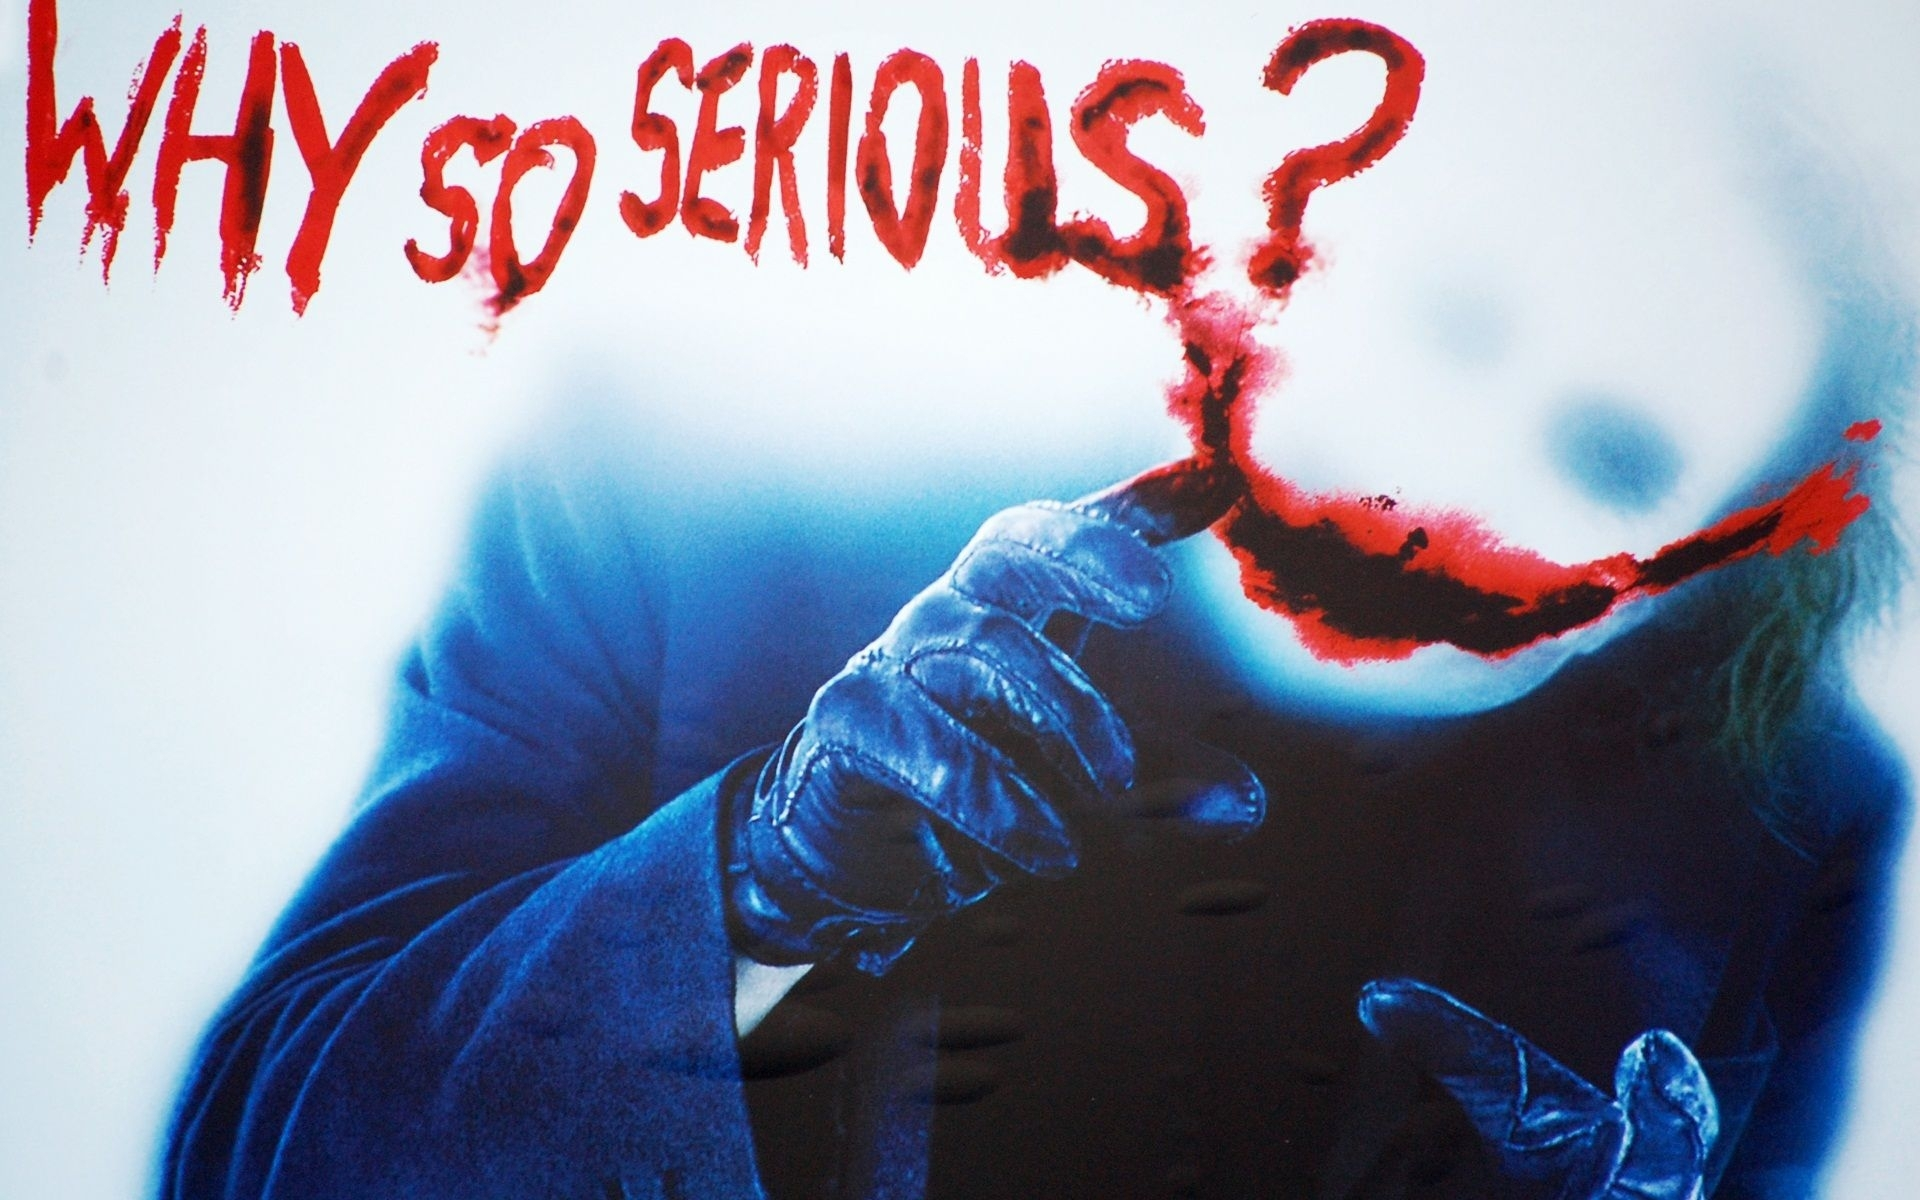 joker why so serious wallpapers - wallpaper cave | images wallpapers